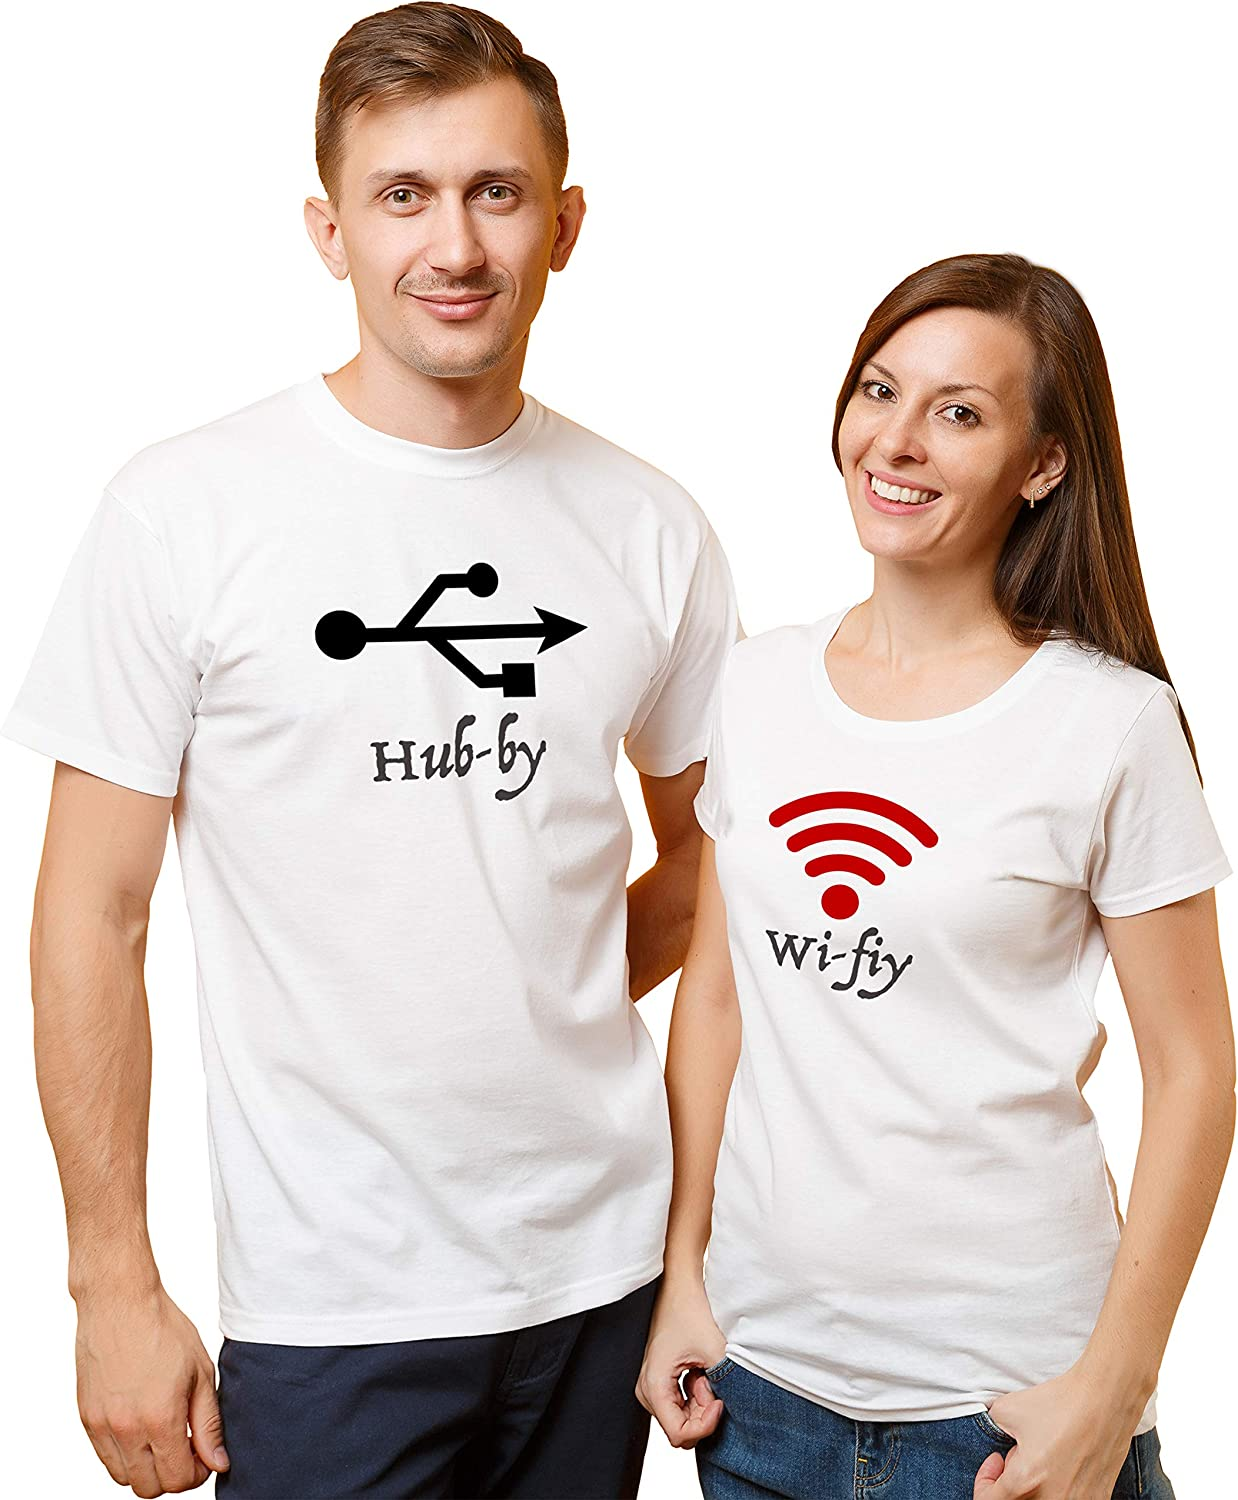 Amazon Com Valentines Day Couple Matching Love T Shirt Cute Icon Gift Tee Set Boyfriend Girlfriend Better Together Perfect Match Hub By And Wi Fiy Design 11 Men